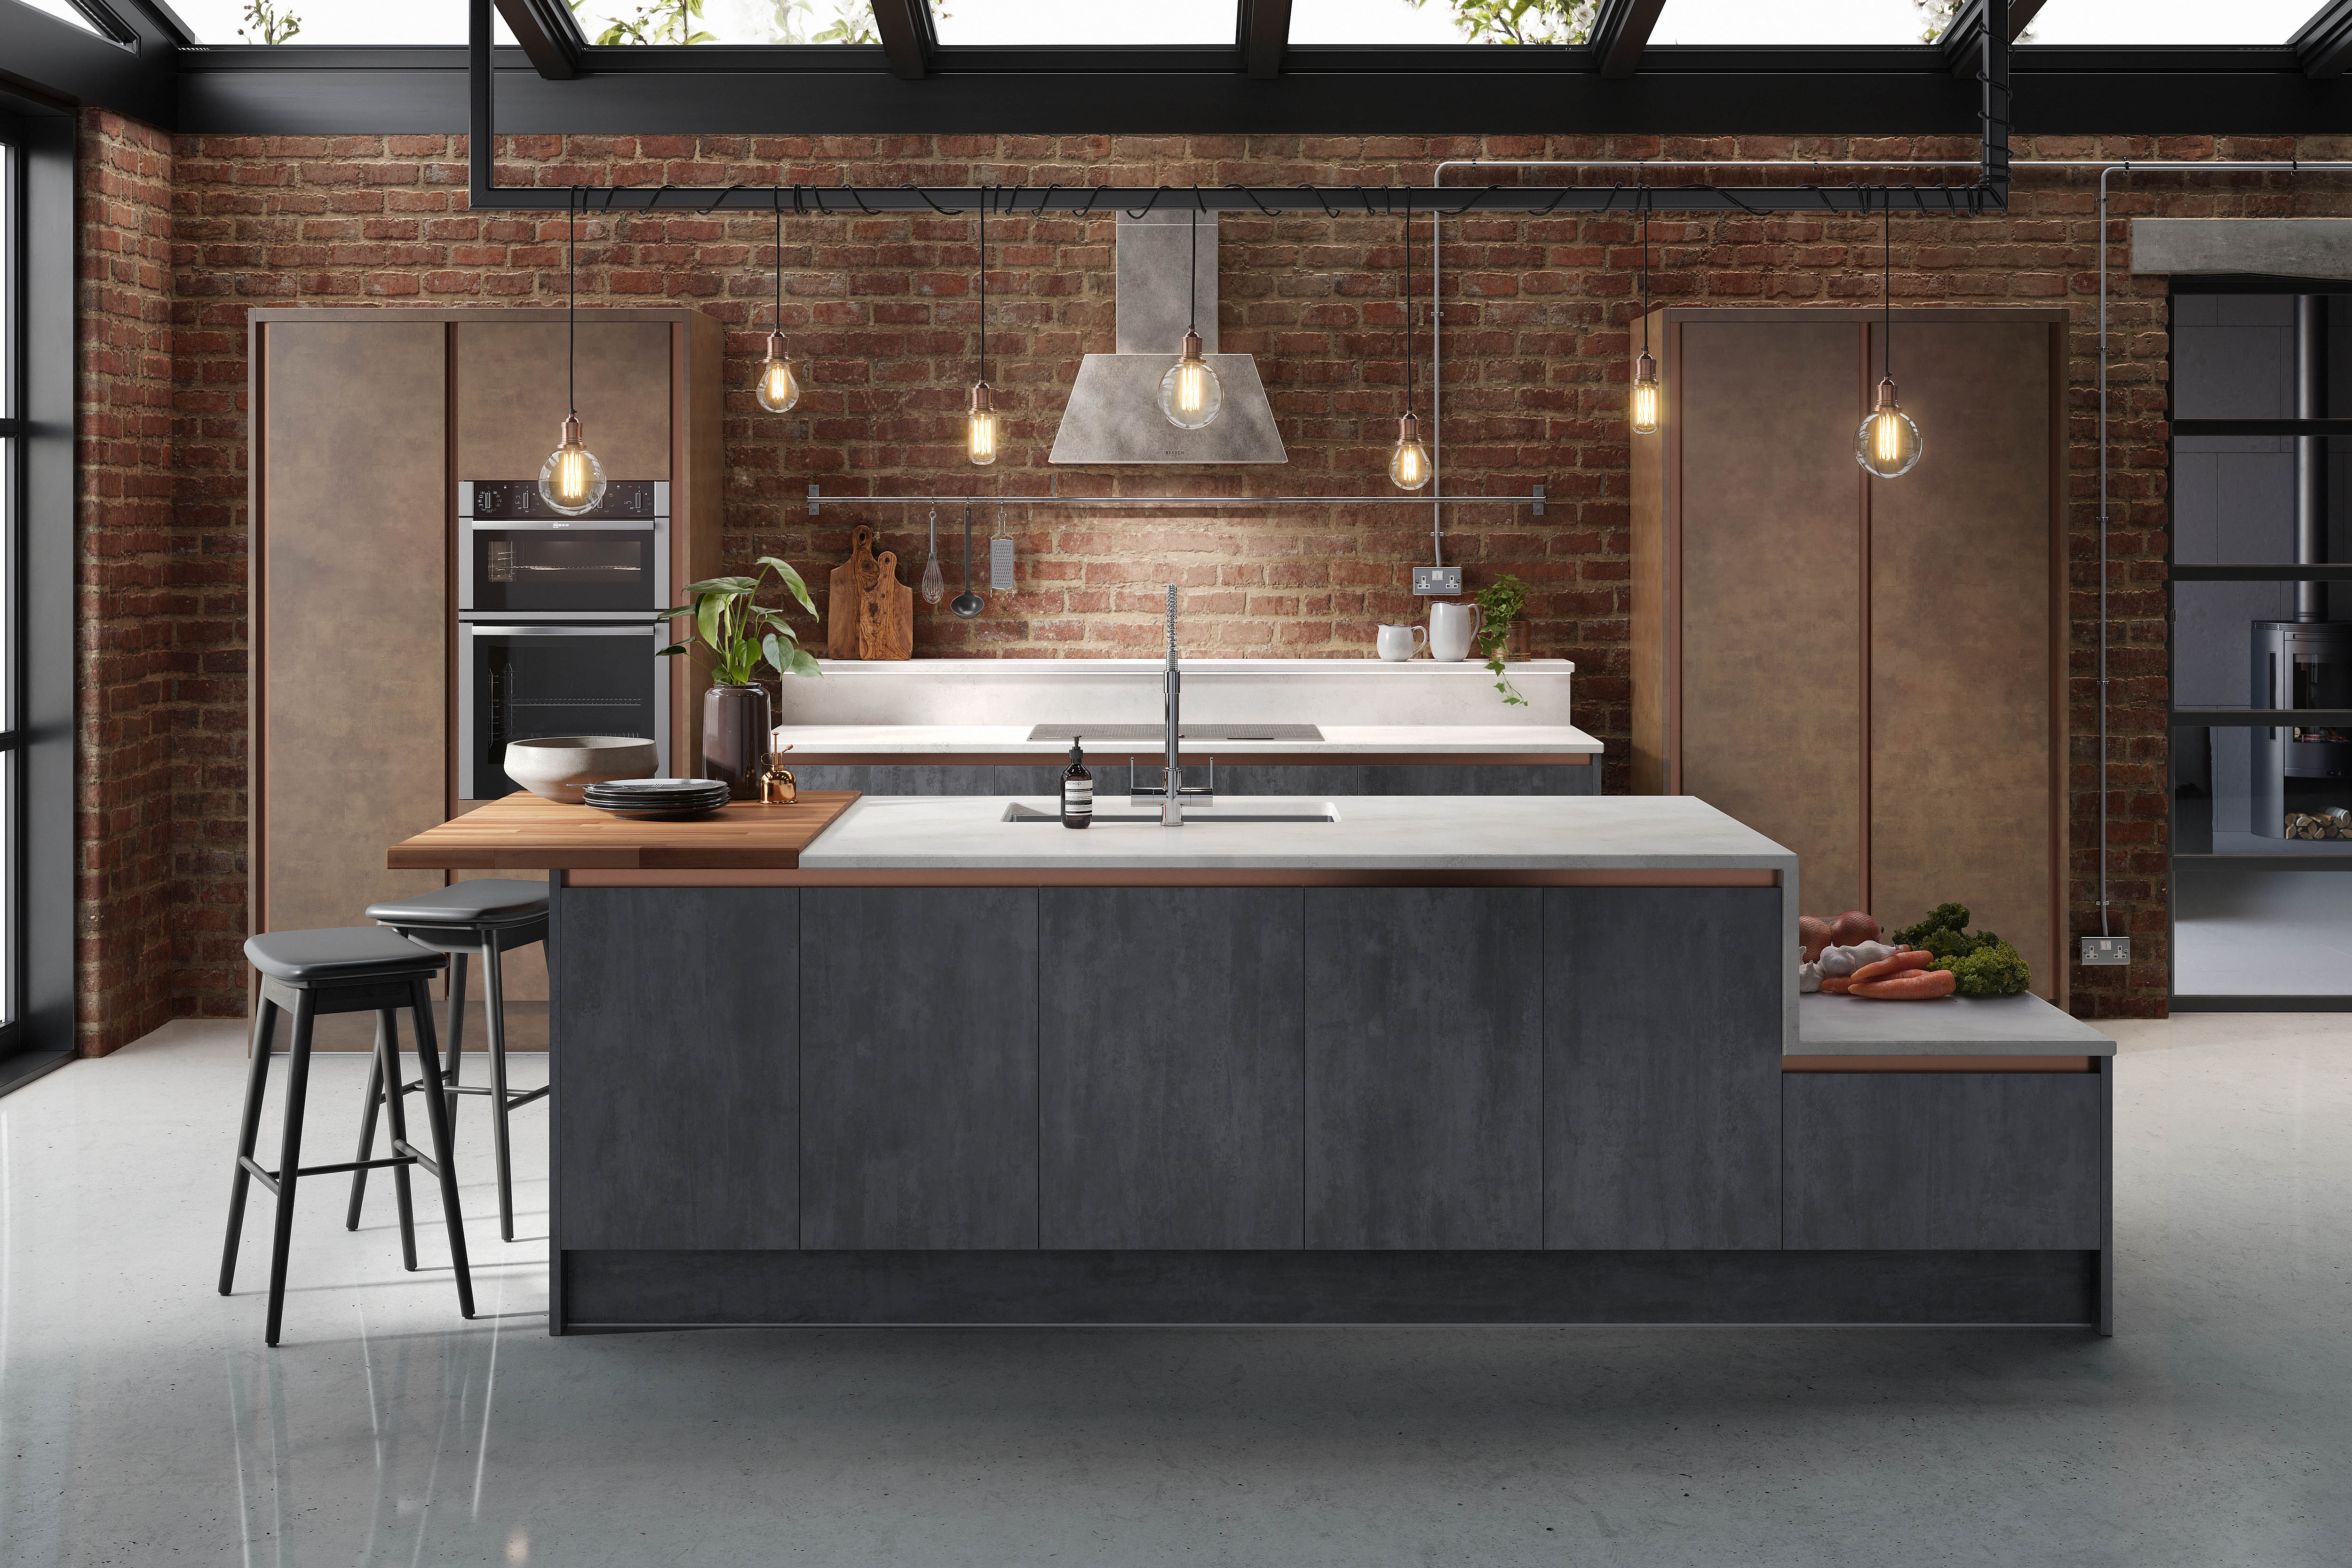 Kitchen Trends For 2020.Kitchen Trends 2020 Wren Kitchens Blog